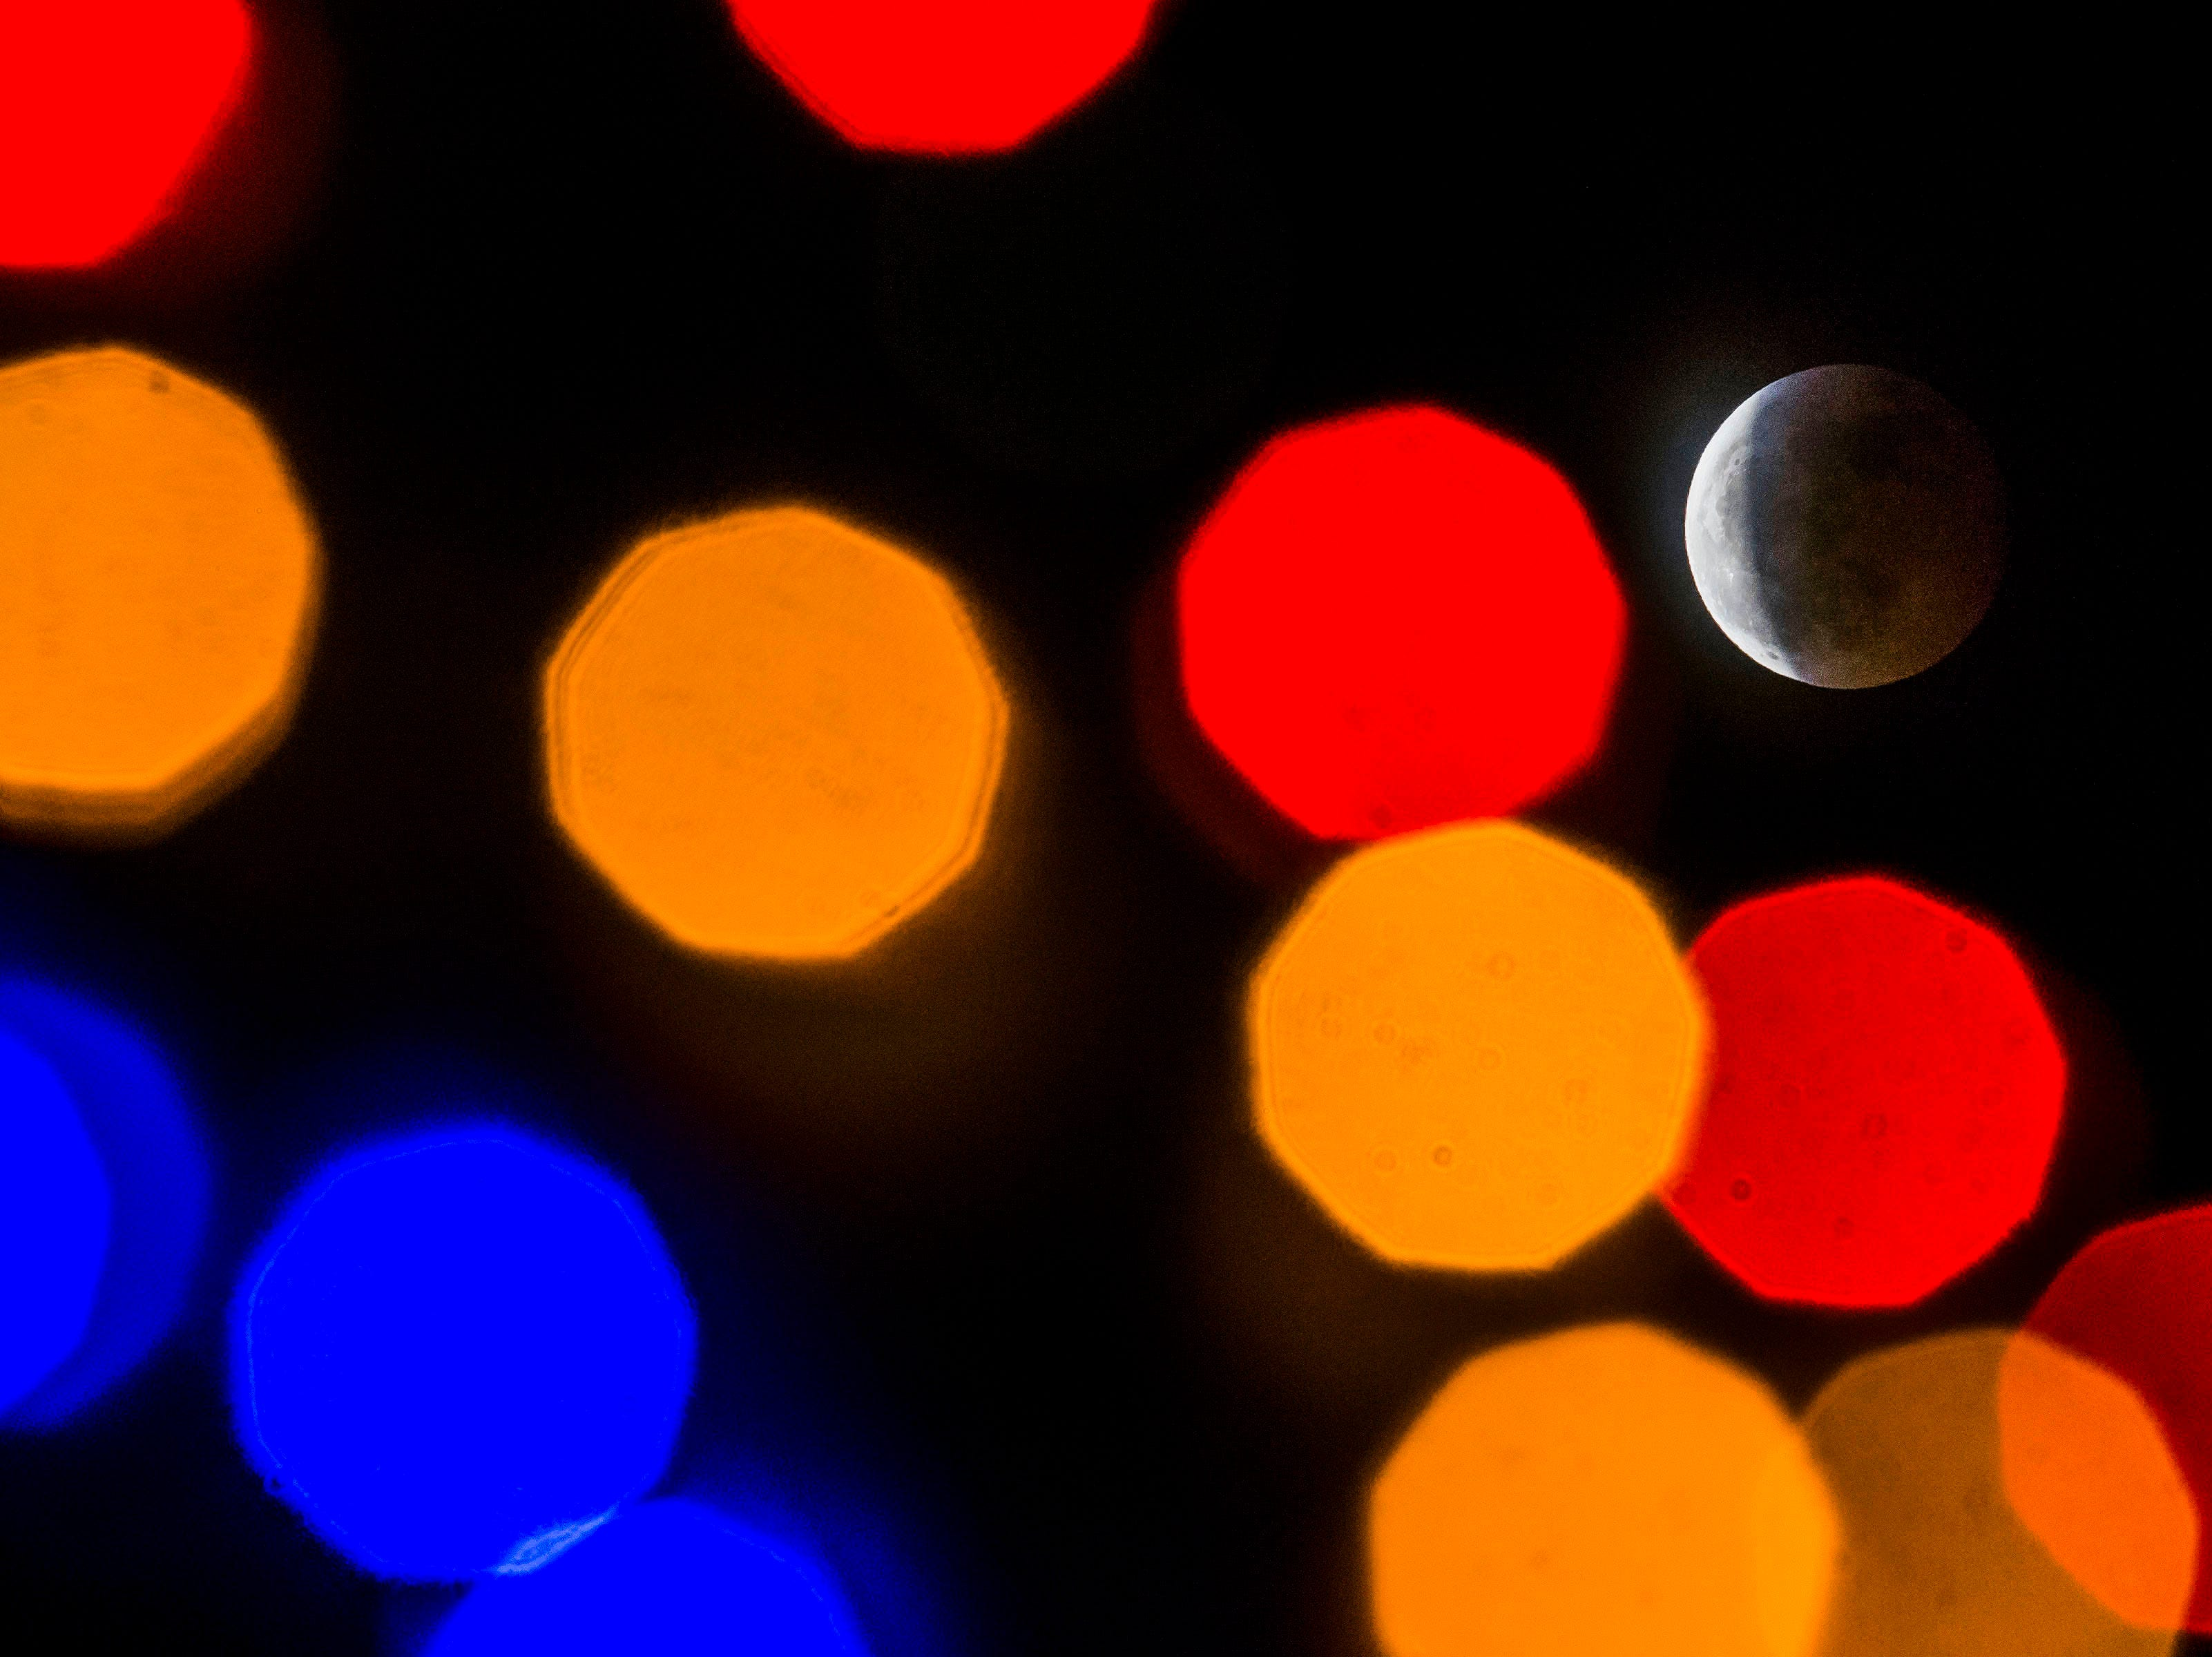 A super blood wolf moon total lunar eclipse shines behind holiday lights in front of the main entrance of Genesis Health Clubs on Sunday, Jan. 20, 2019, in Fort Collins, Colo.